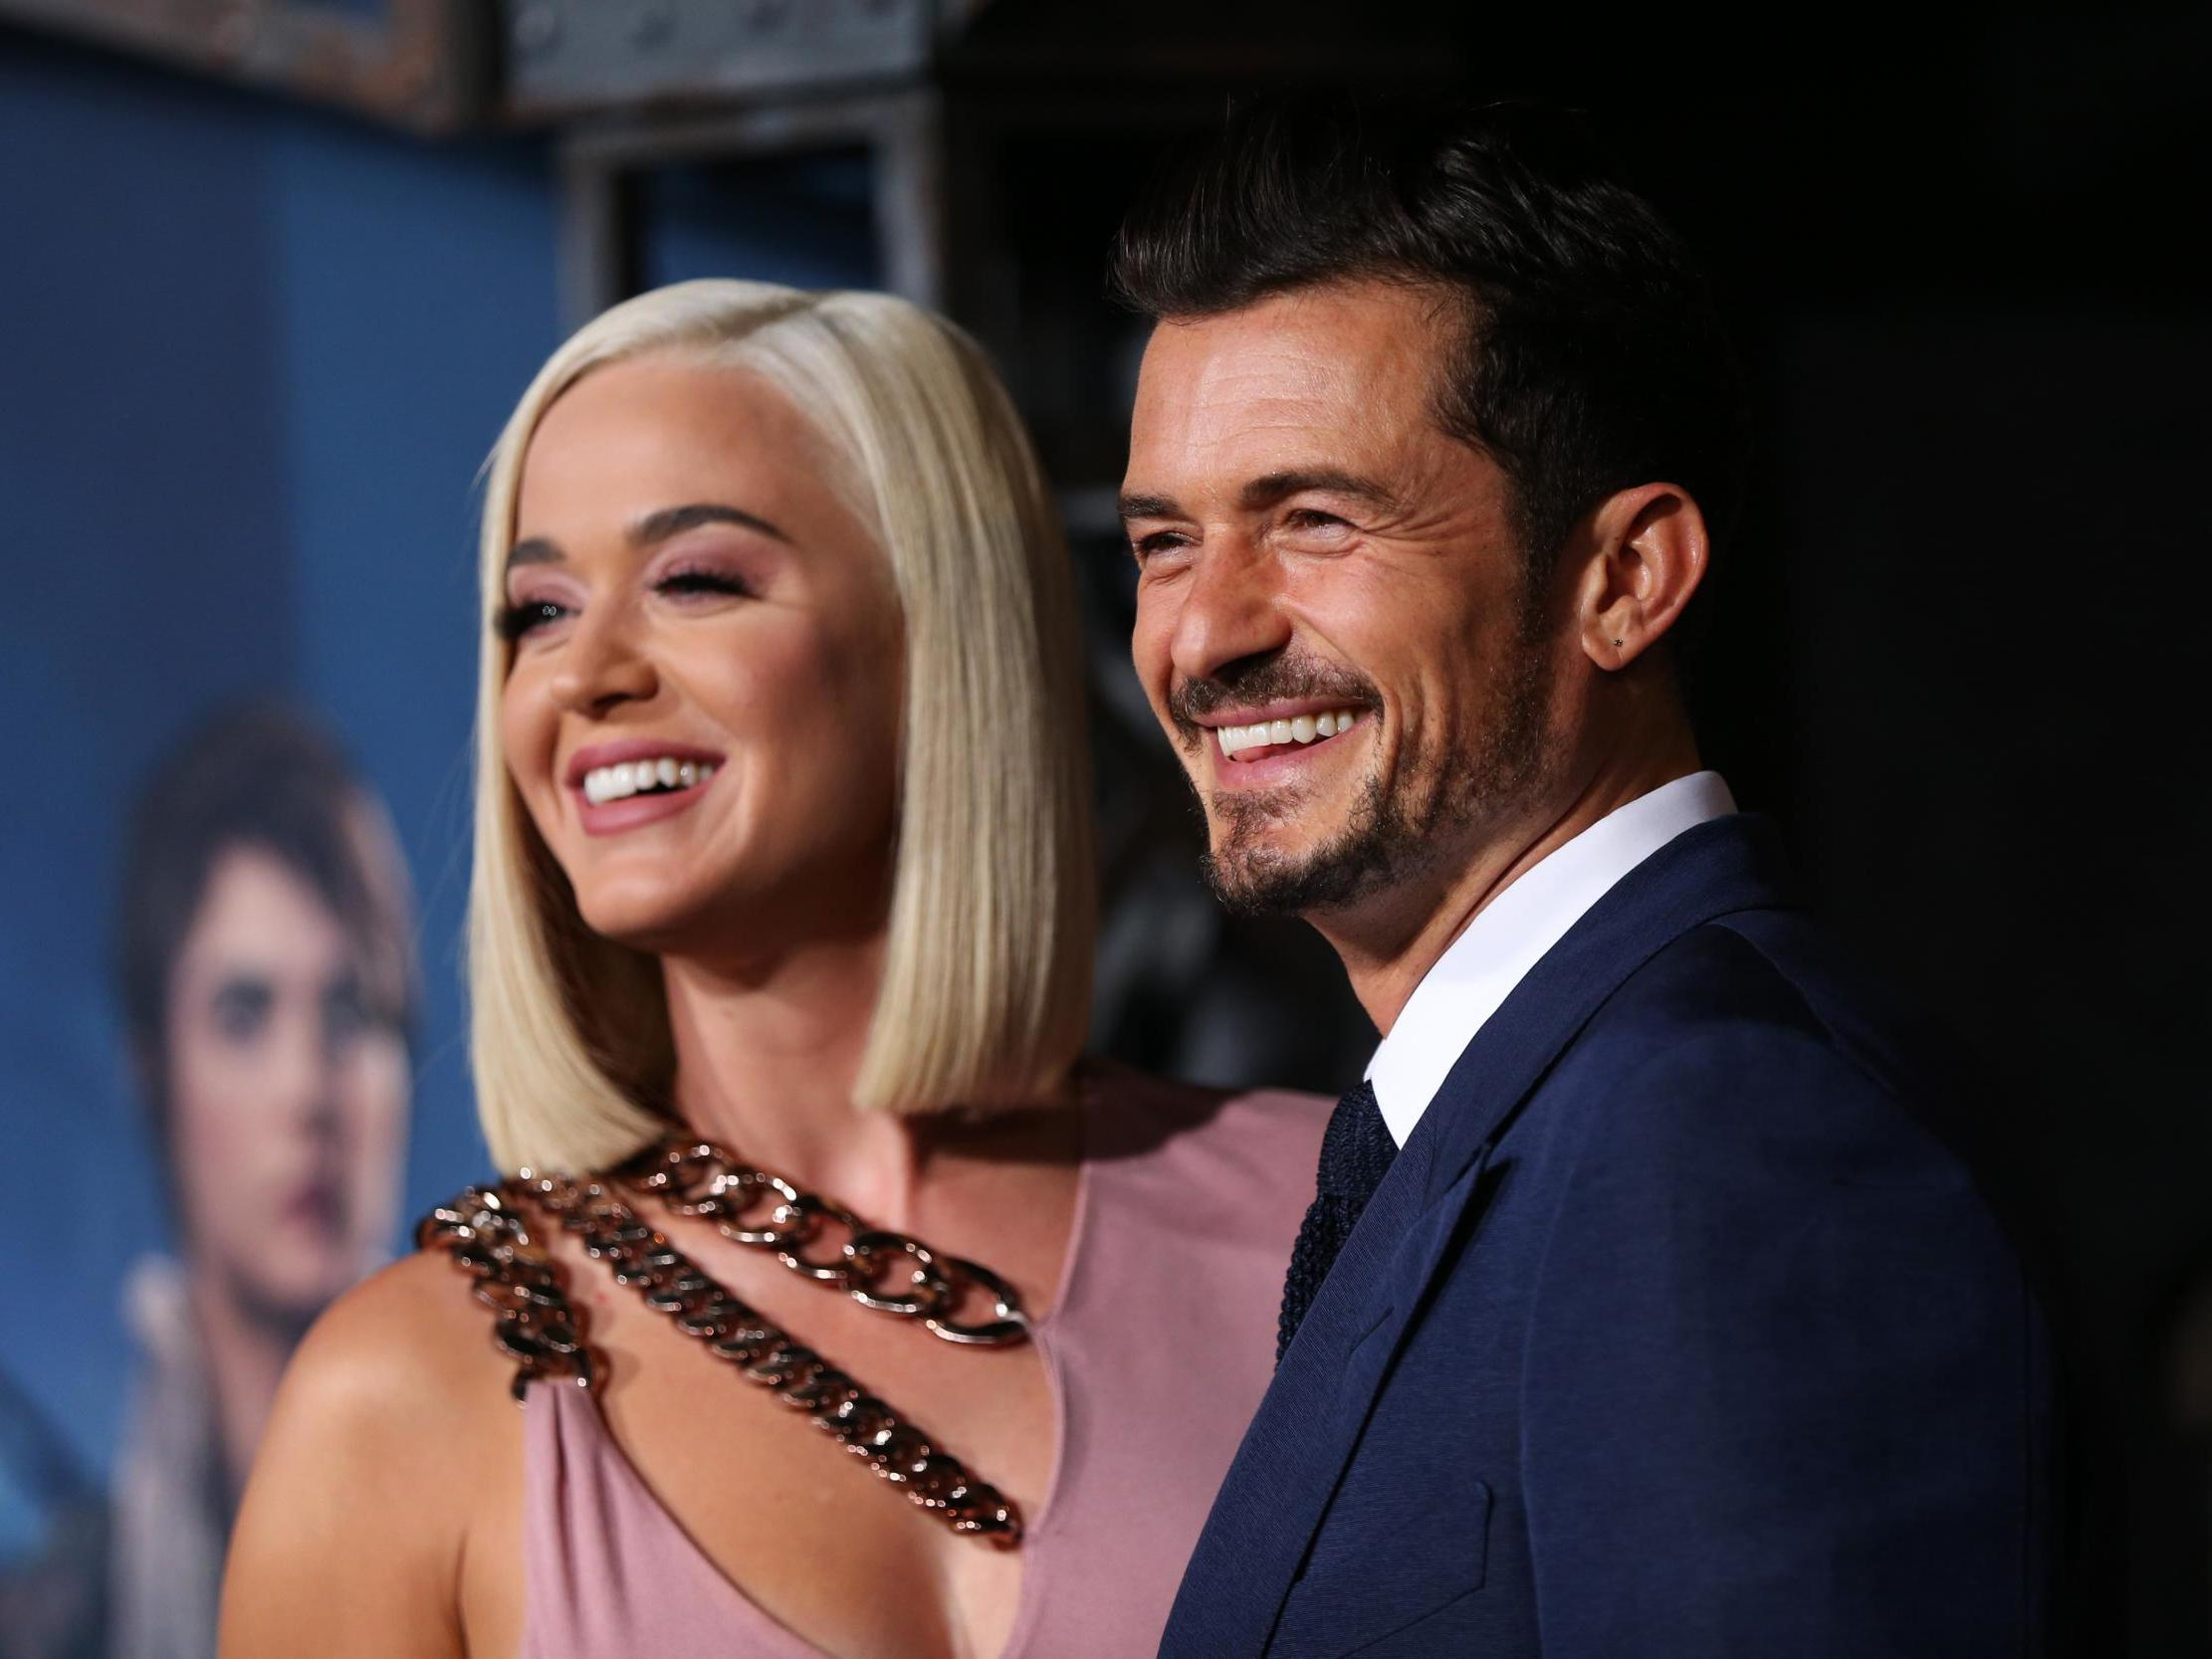 Orlando Bloom praises Katy Perry as 'force of nature' in pregnancy